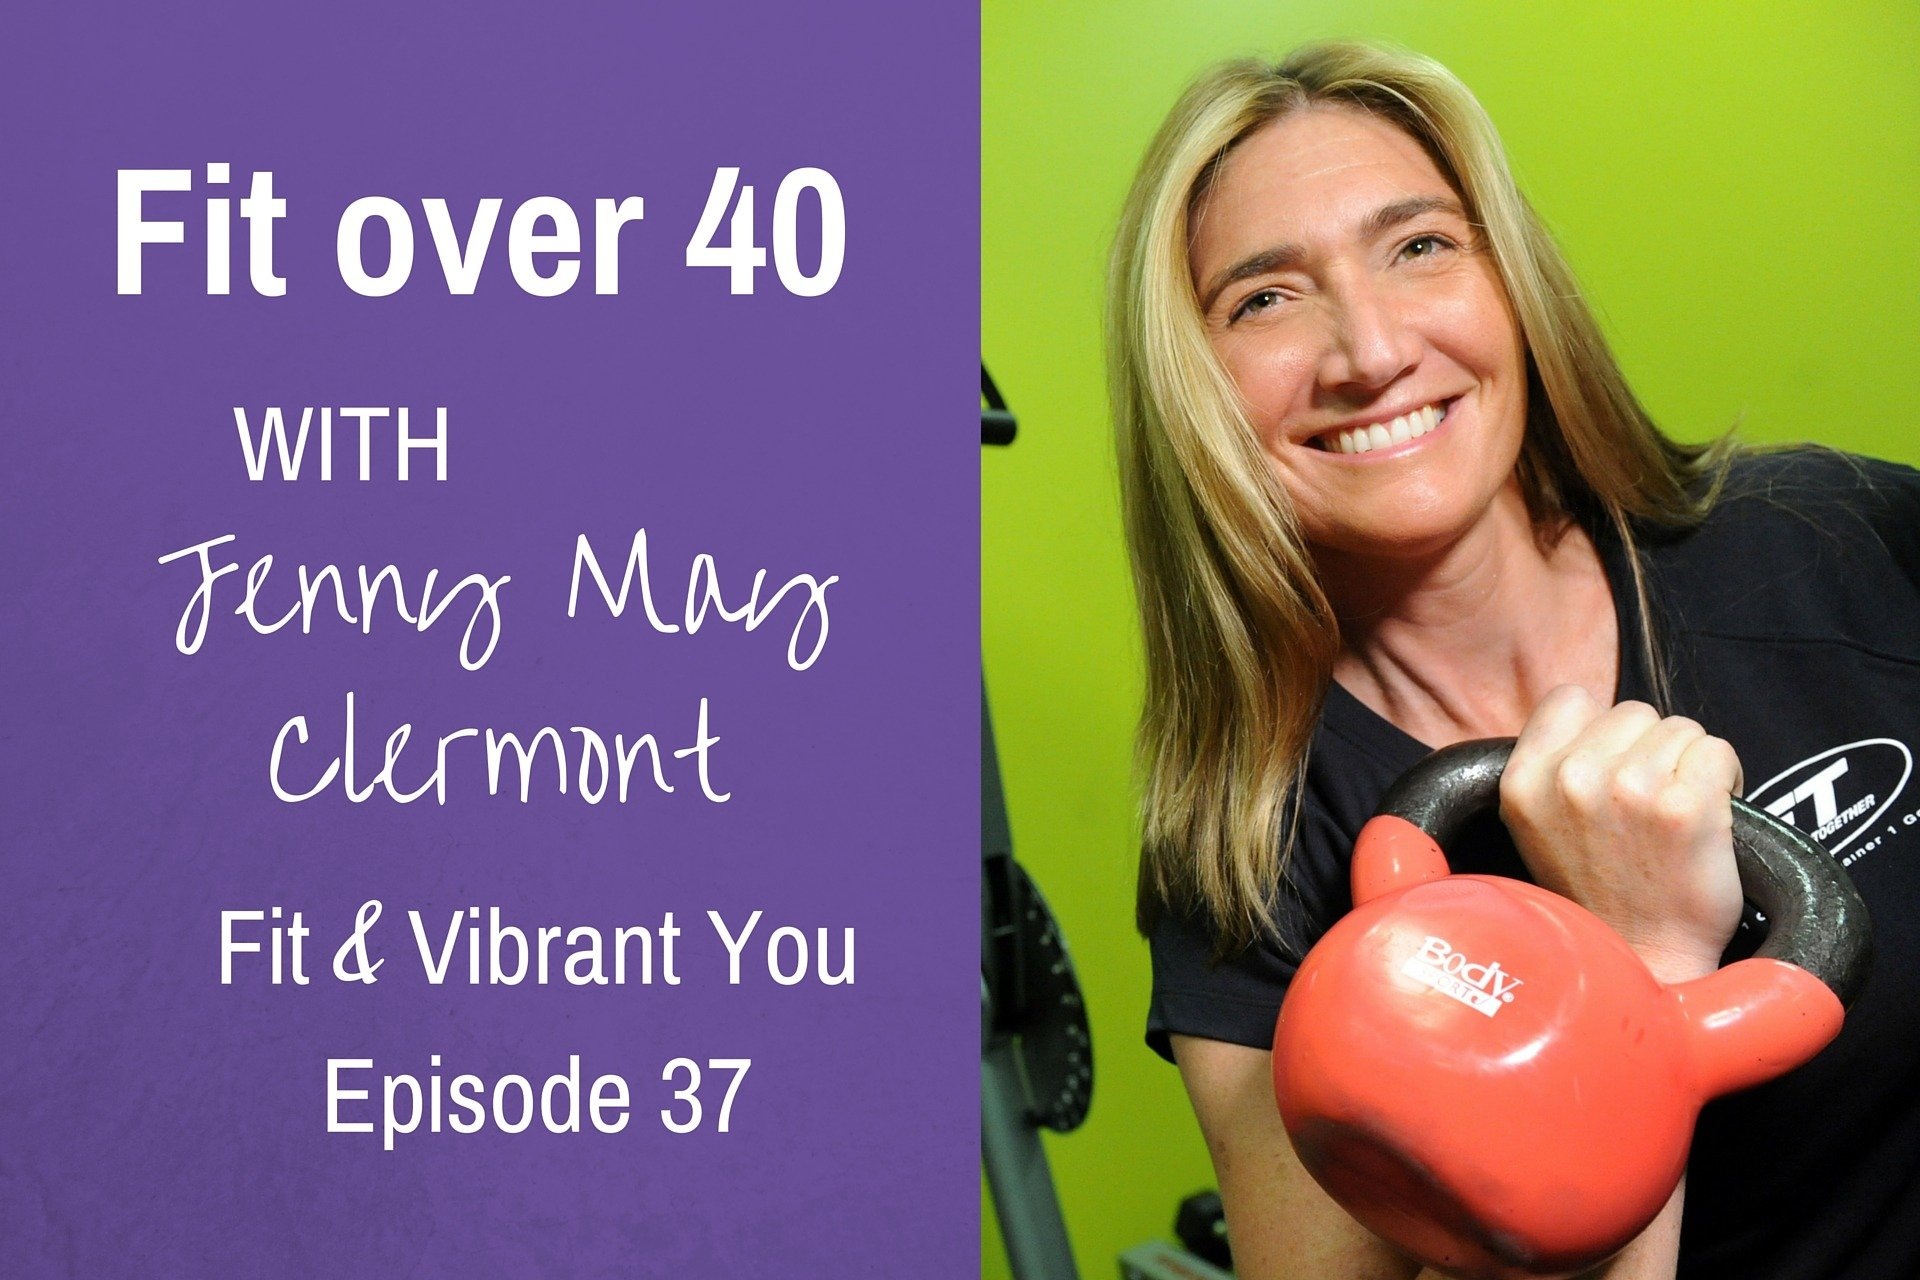 FVY 37: Fit over 40 with Jenny May Clermont